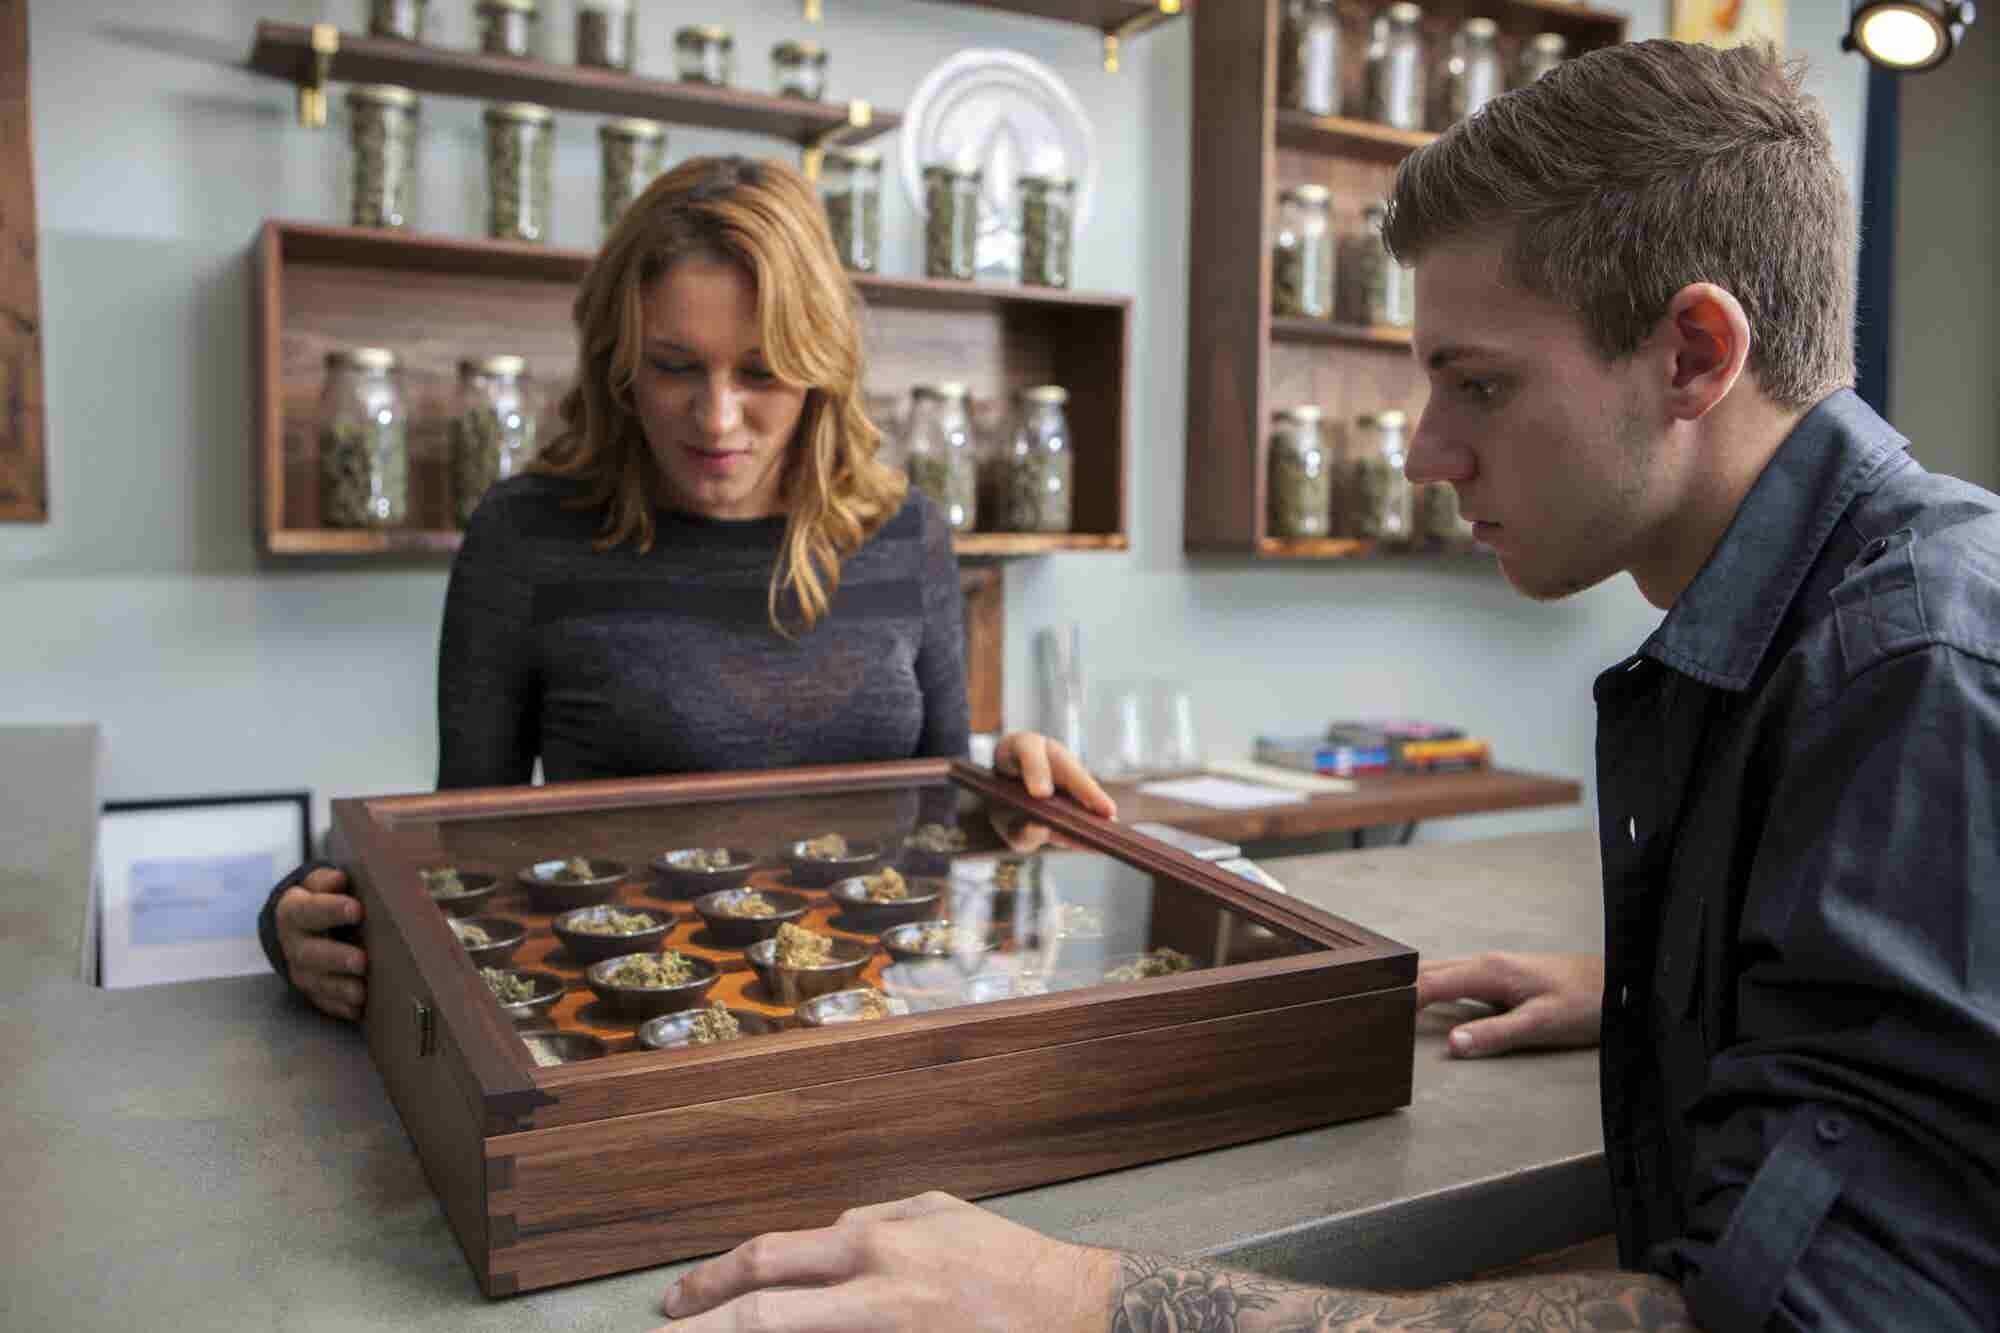 5 Opportunities for Entrepreneurs to Capitalize on America's New Relationship with Cannabis